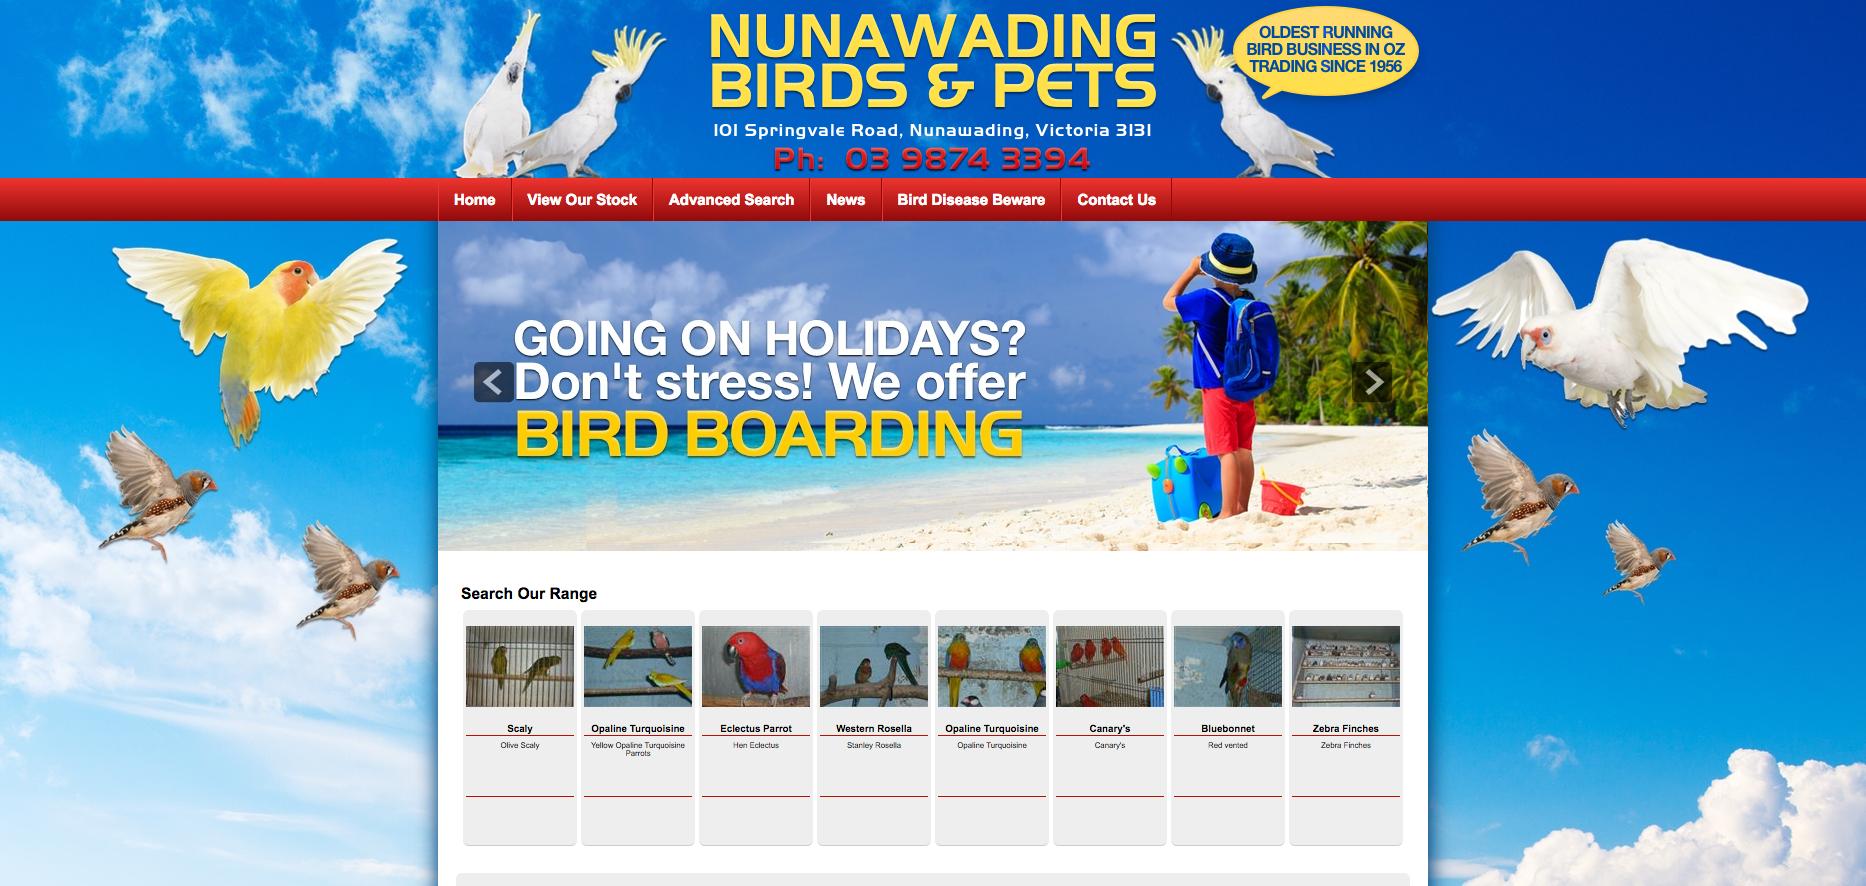 New Website Launched for Nunawading Birds & Pets